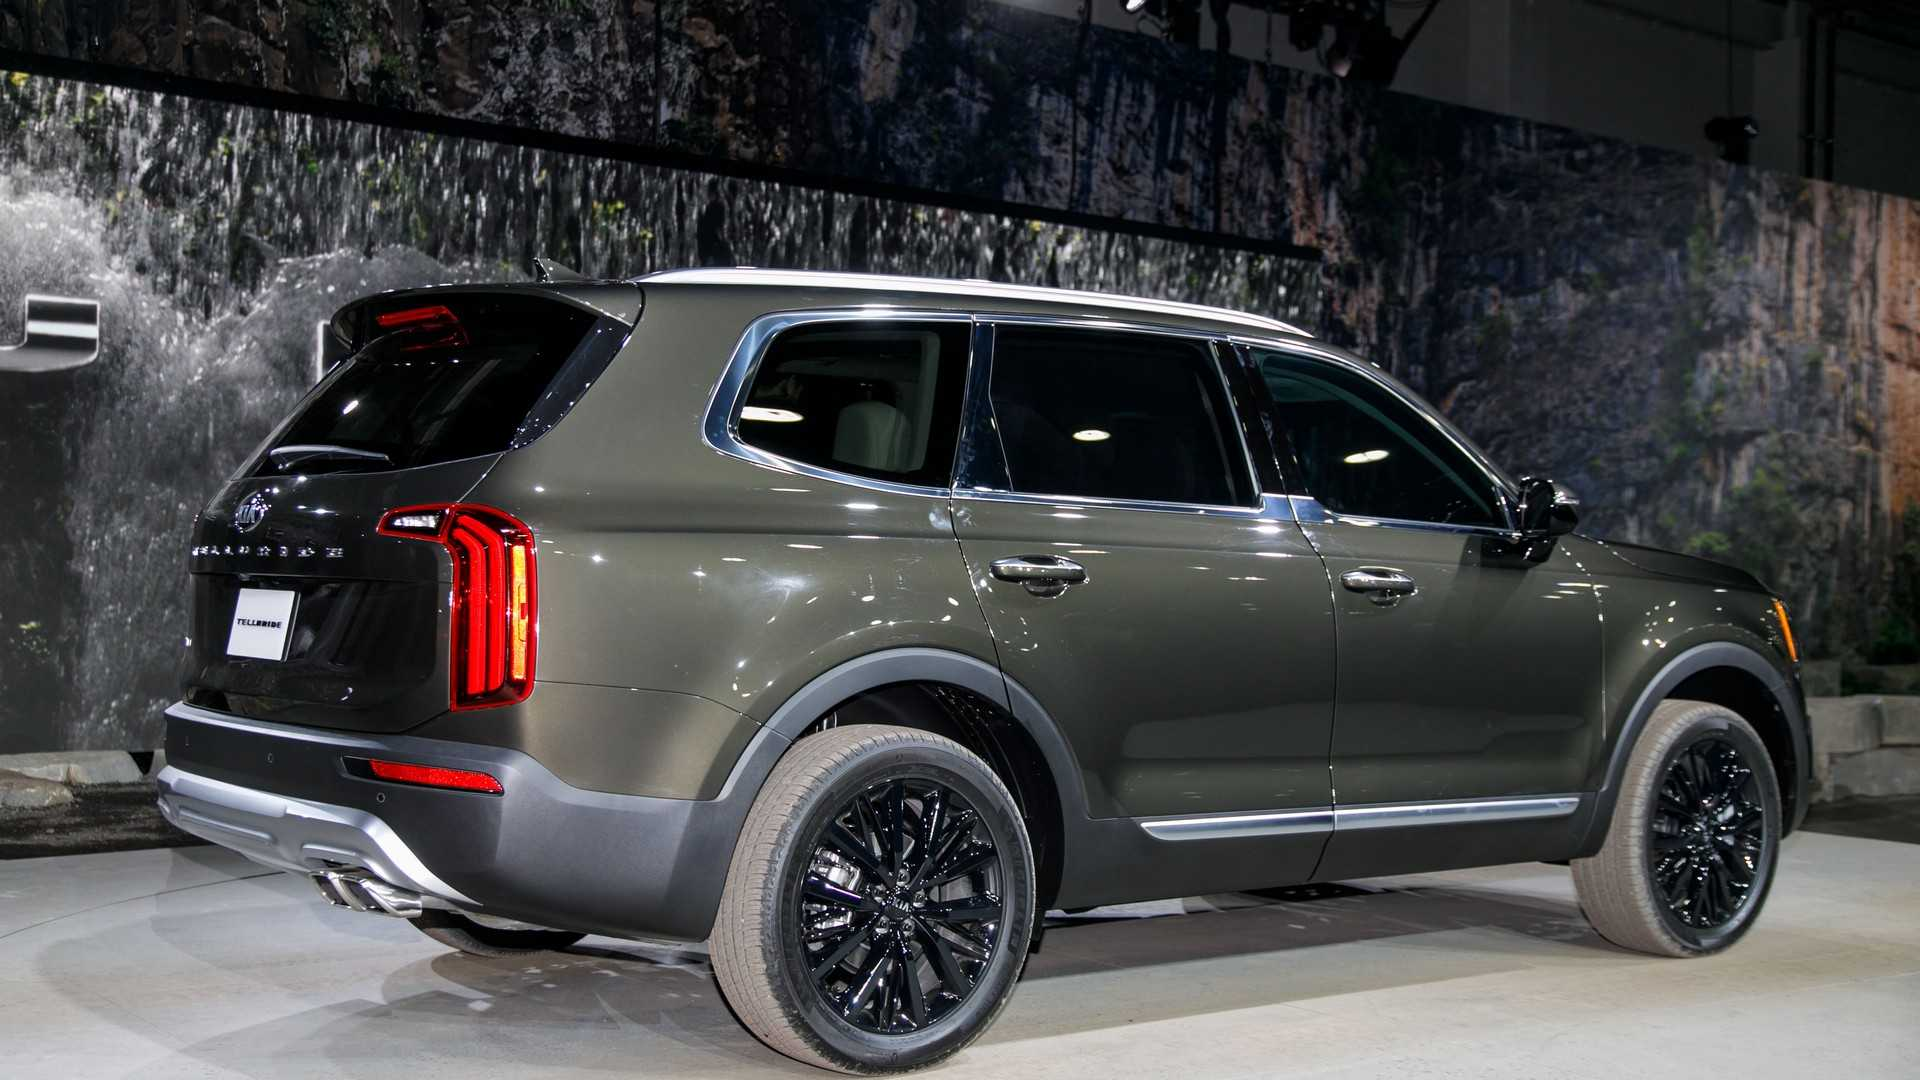 90 The Best 2020 Kia Telluride Black Copper Specs and Review